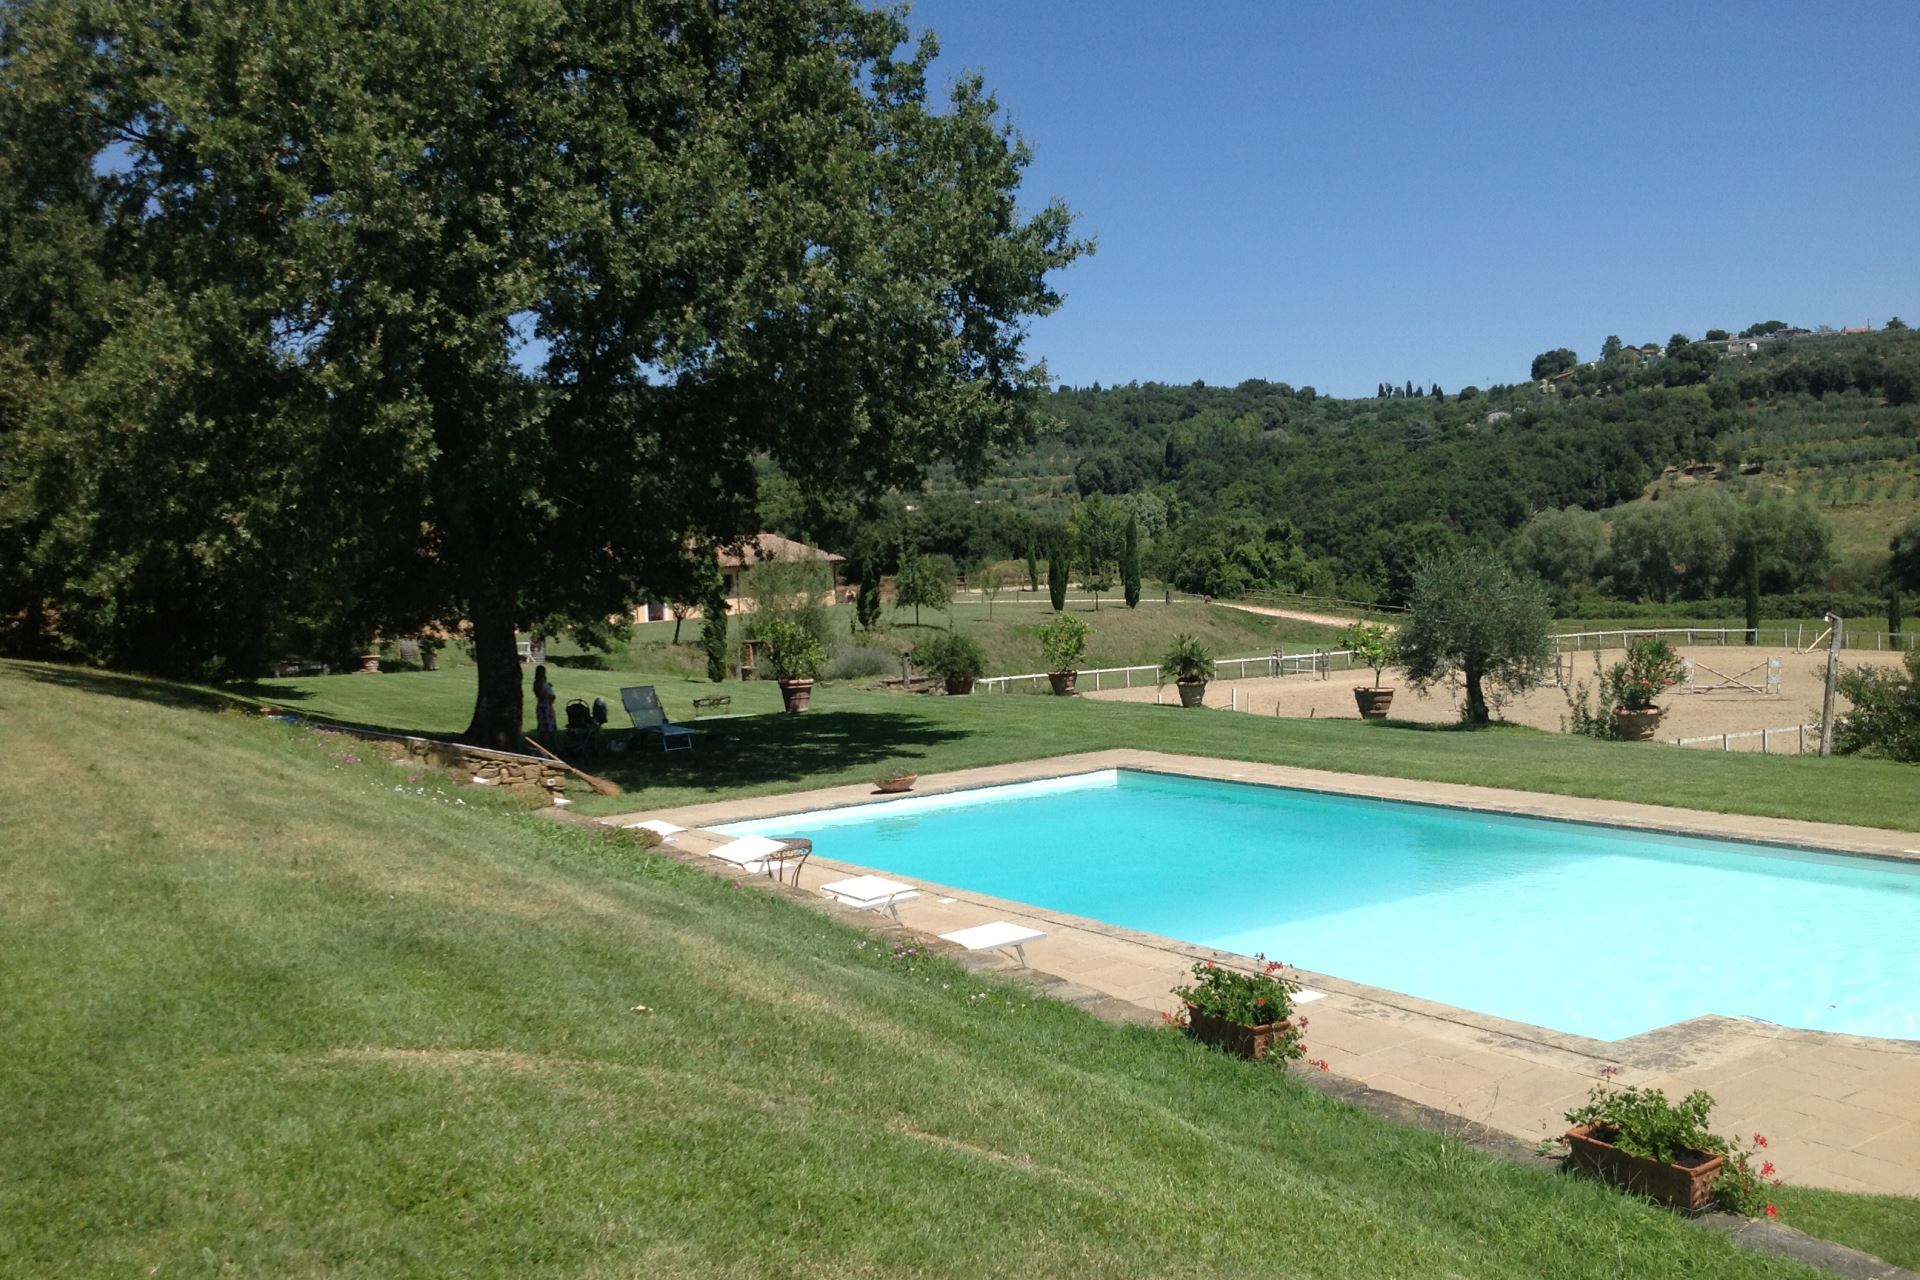 VILLAS WITH POOL VILLA MALVASIA CIVITELLA IN VAL DI CHIANA TOSCANA